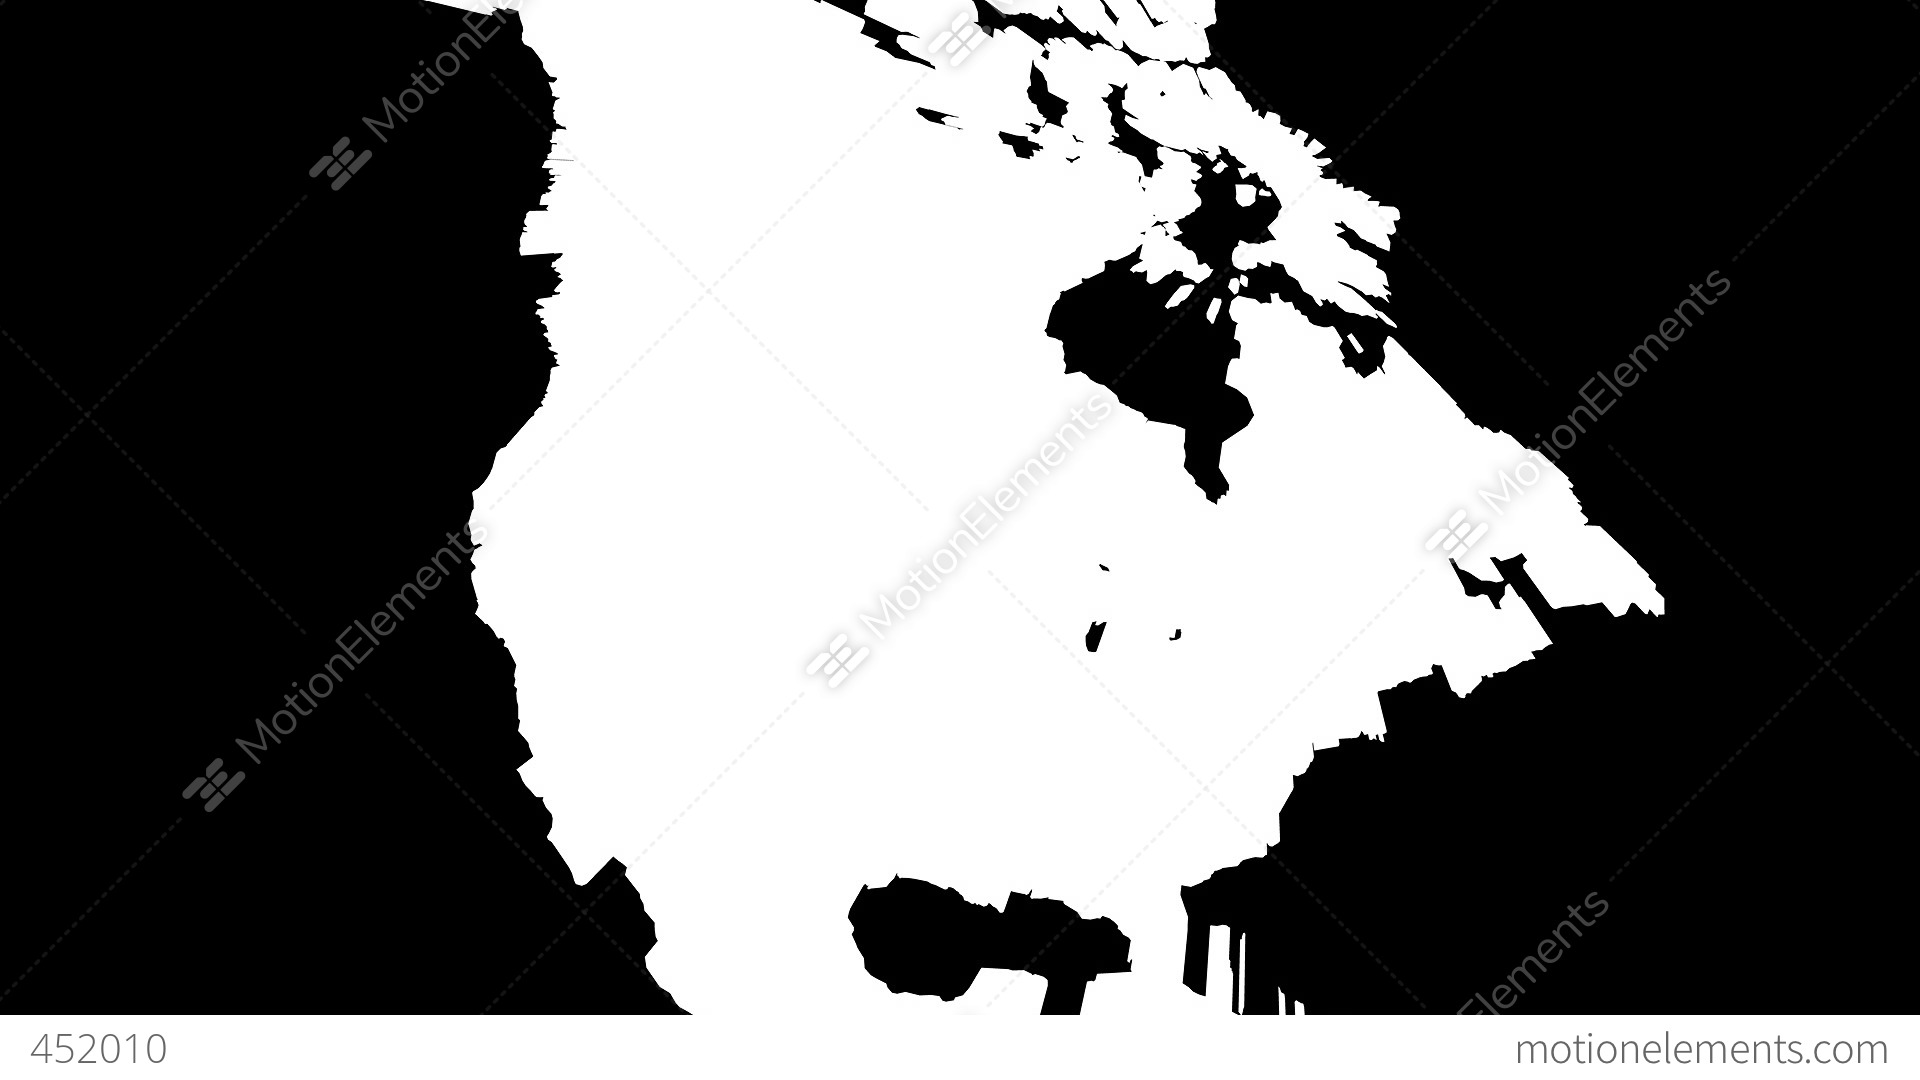 D Map Of USA With State Flags Stock Animation RoyaltyFree - 3d map usa states